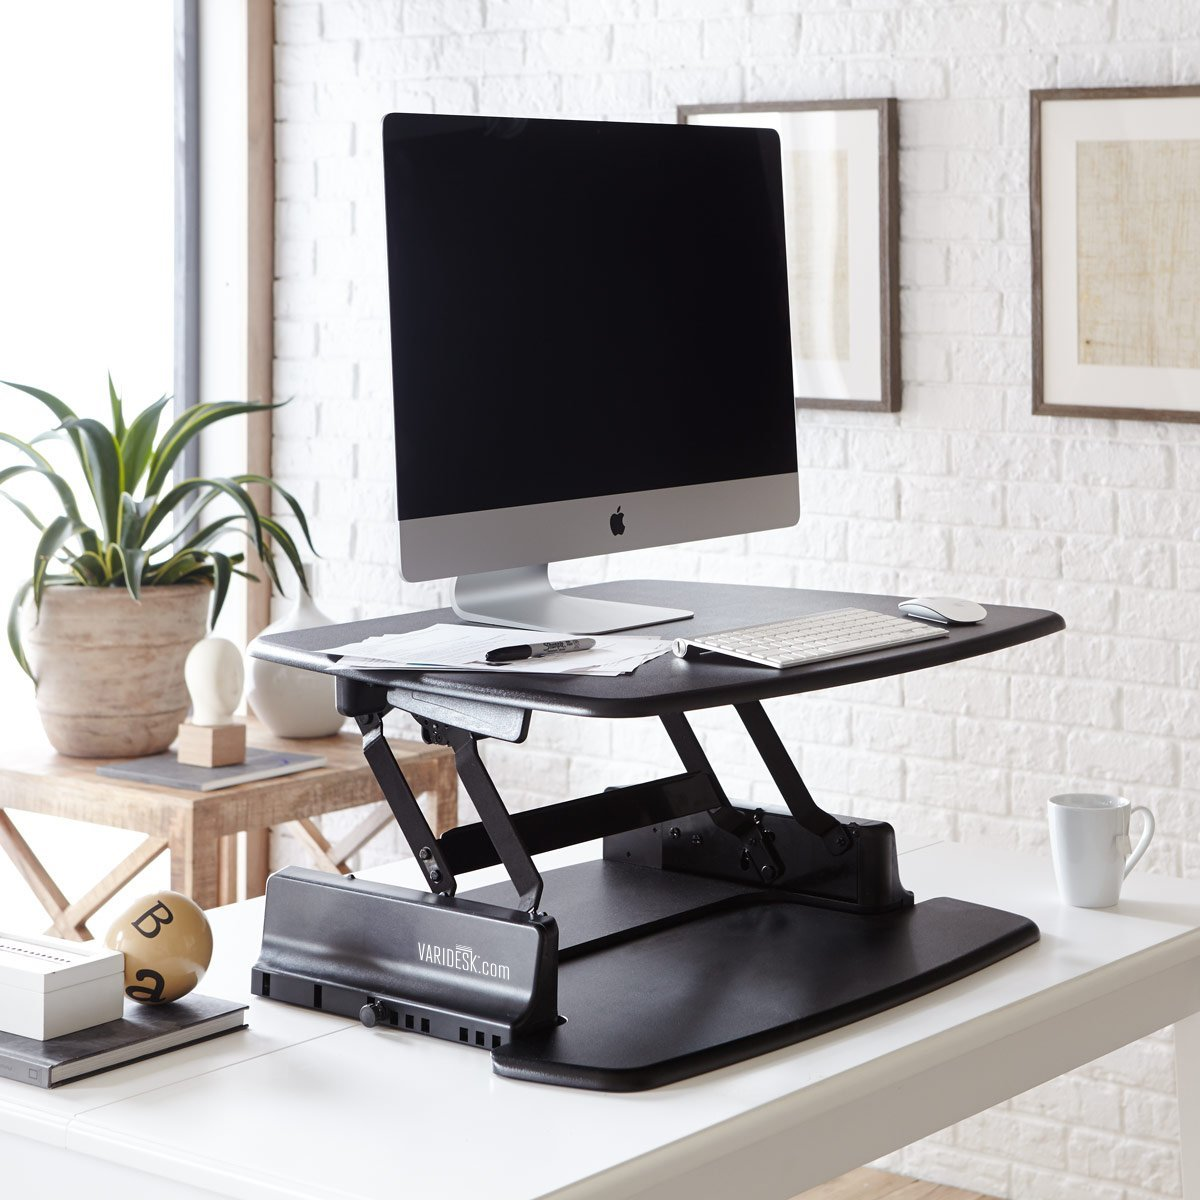 this standing desk is a little more involved than the 3 desk on our list and it costs a bit more as a result